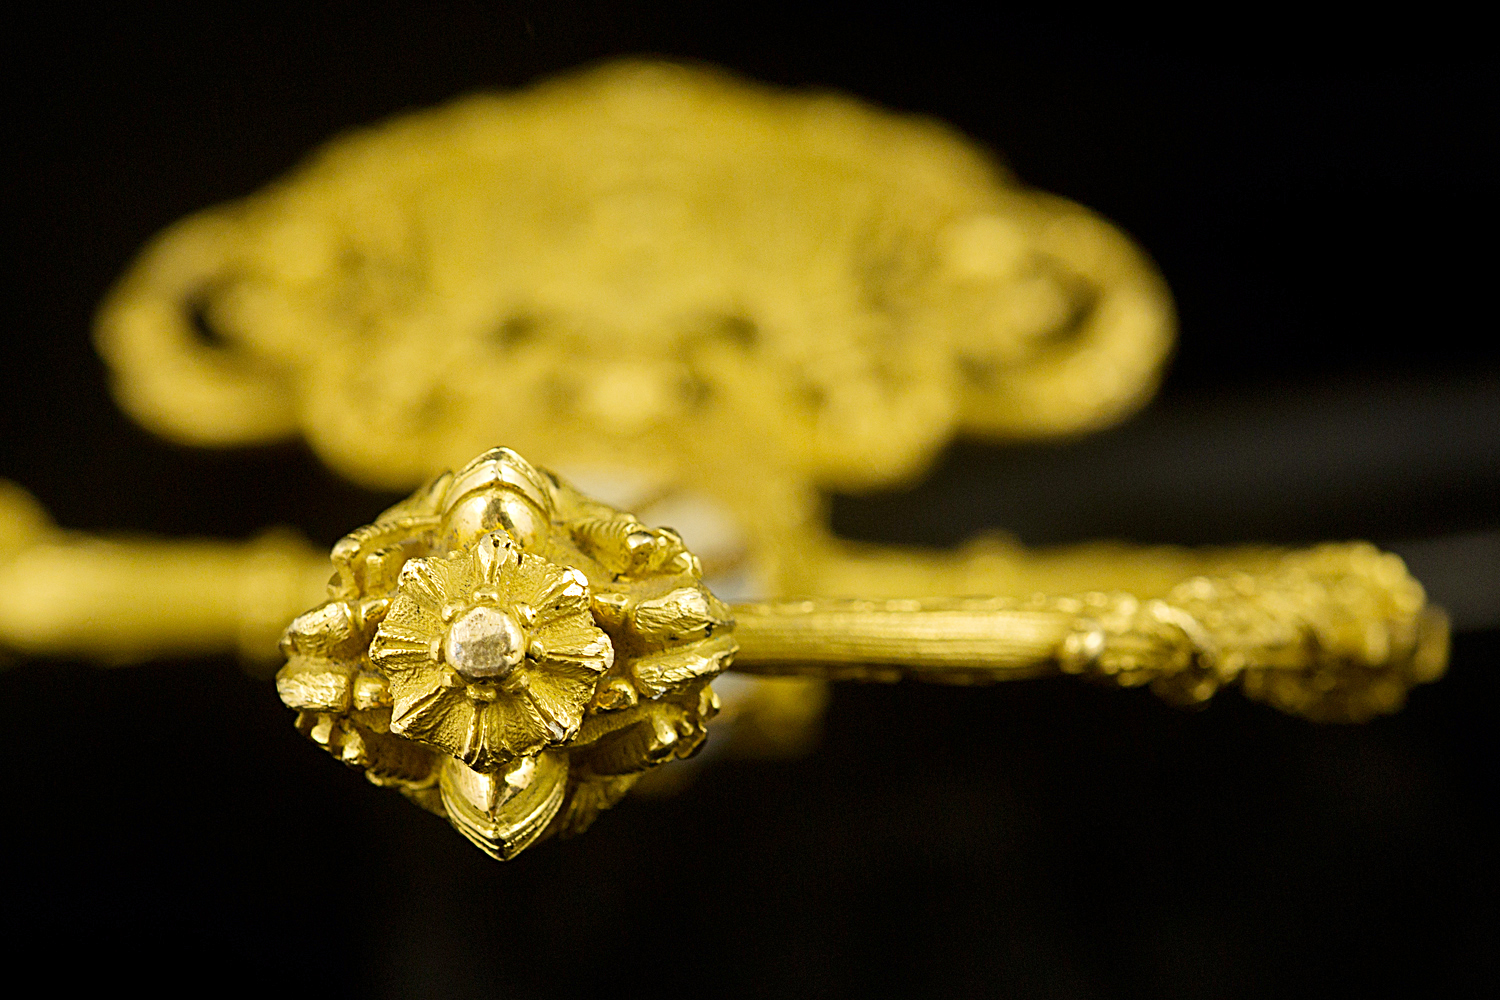 S000057_French_Ambassador_Smallsword_Detail_Hilt_Pommel